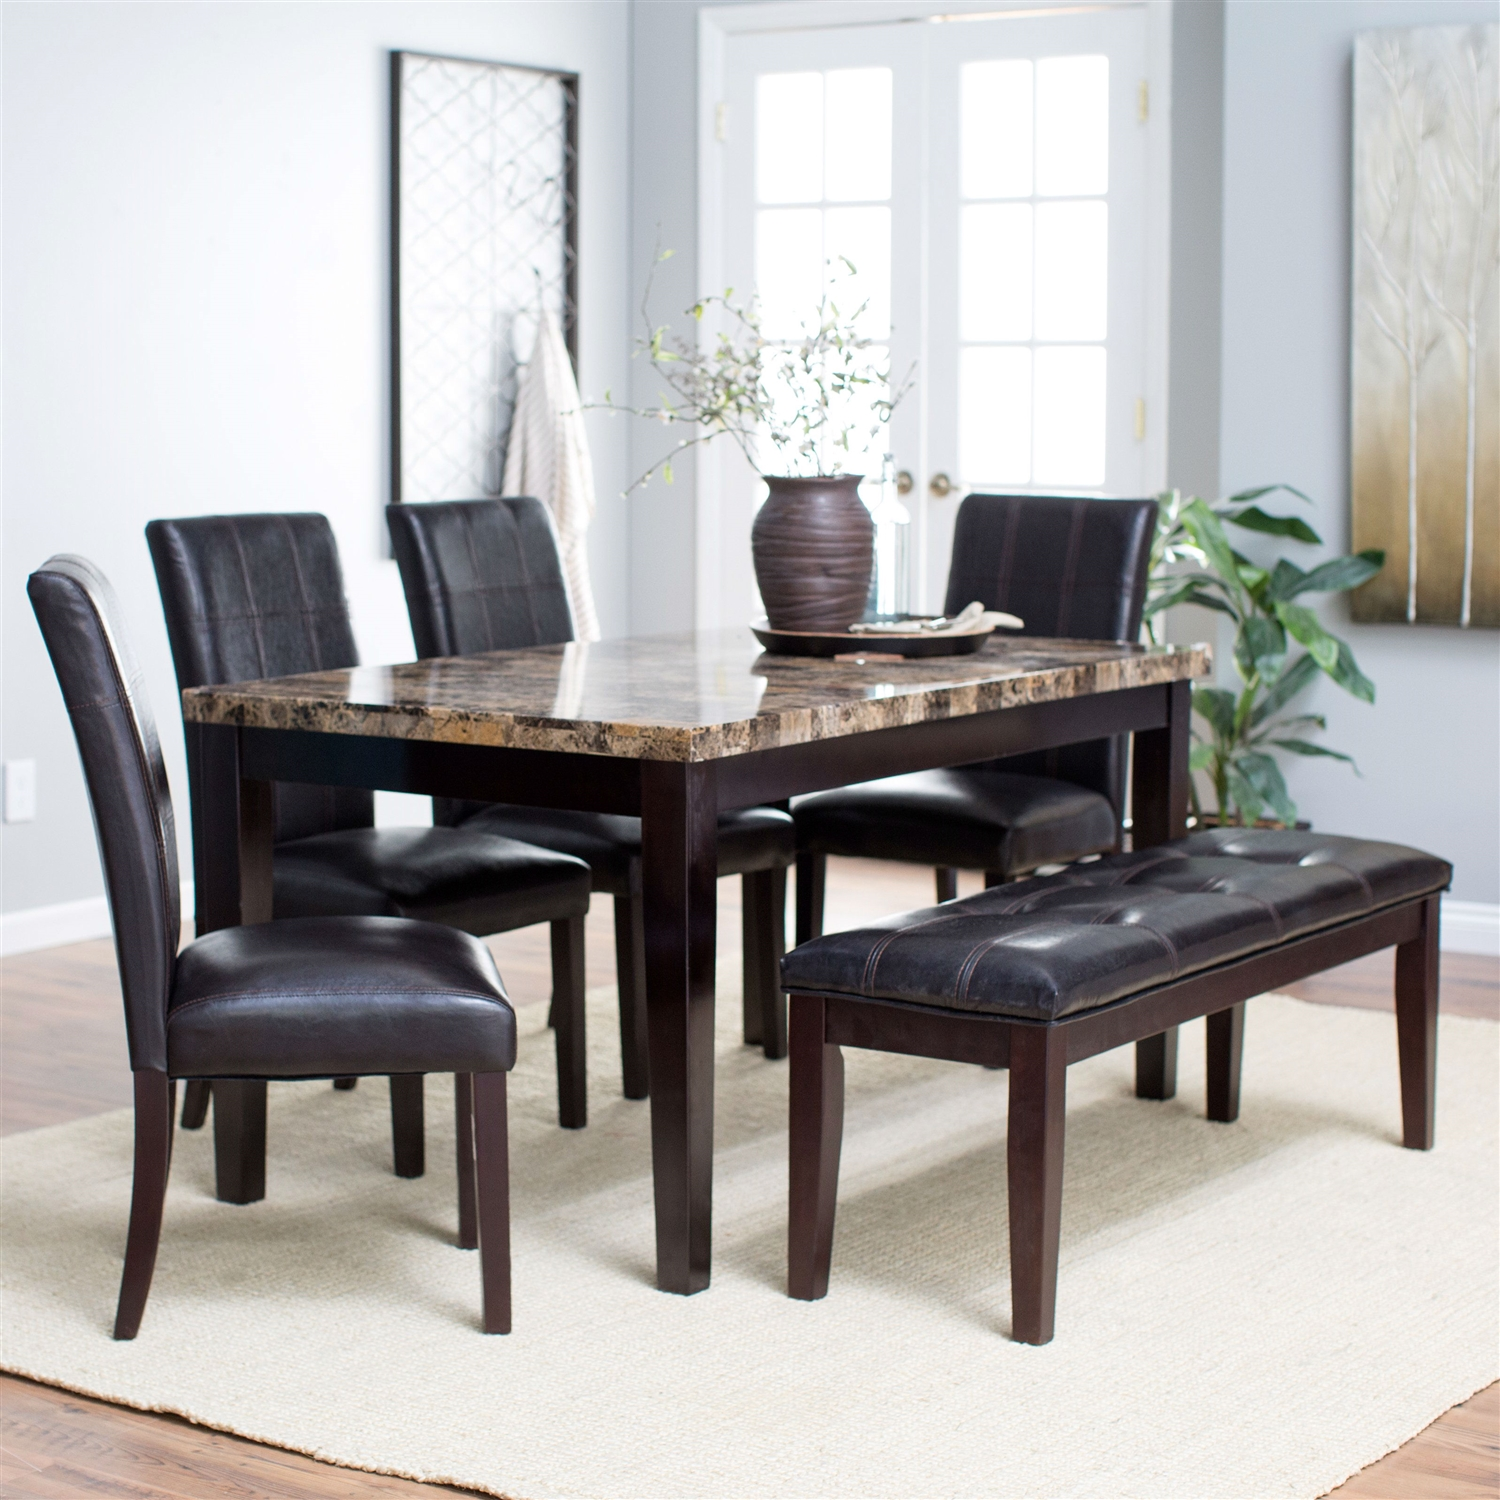 Incredible Traditional 6 Piece Dining Set With Faux Marble Top Table 4 Chairs And Bench Creativecarmelina Interior Chair Design Creativecarmelinacom